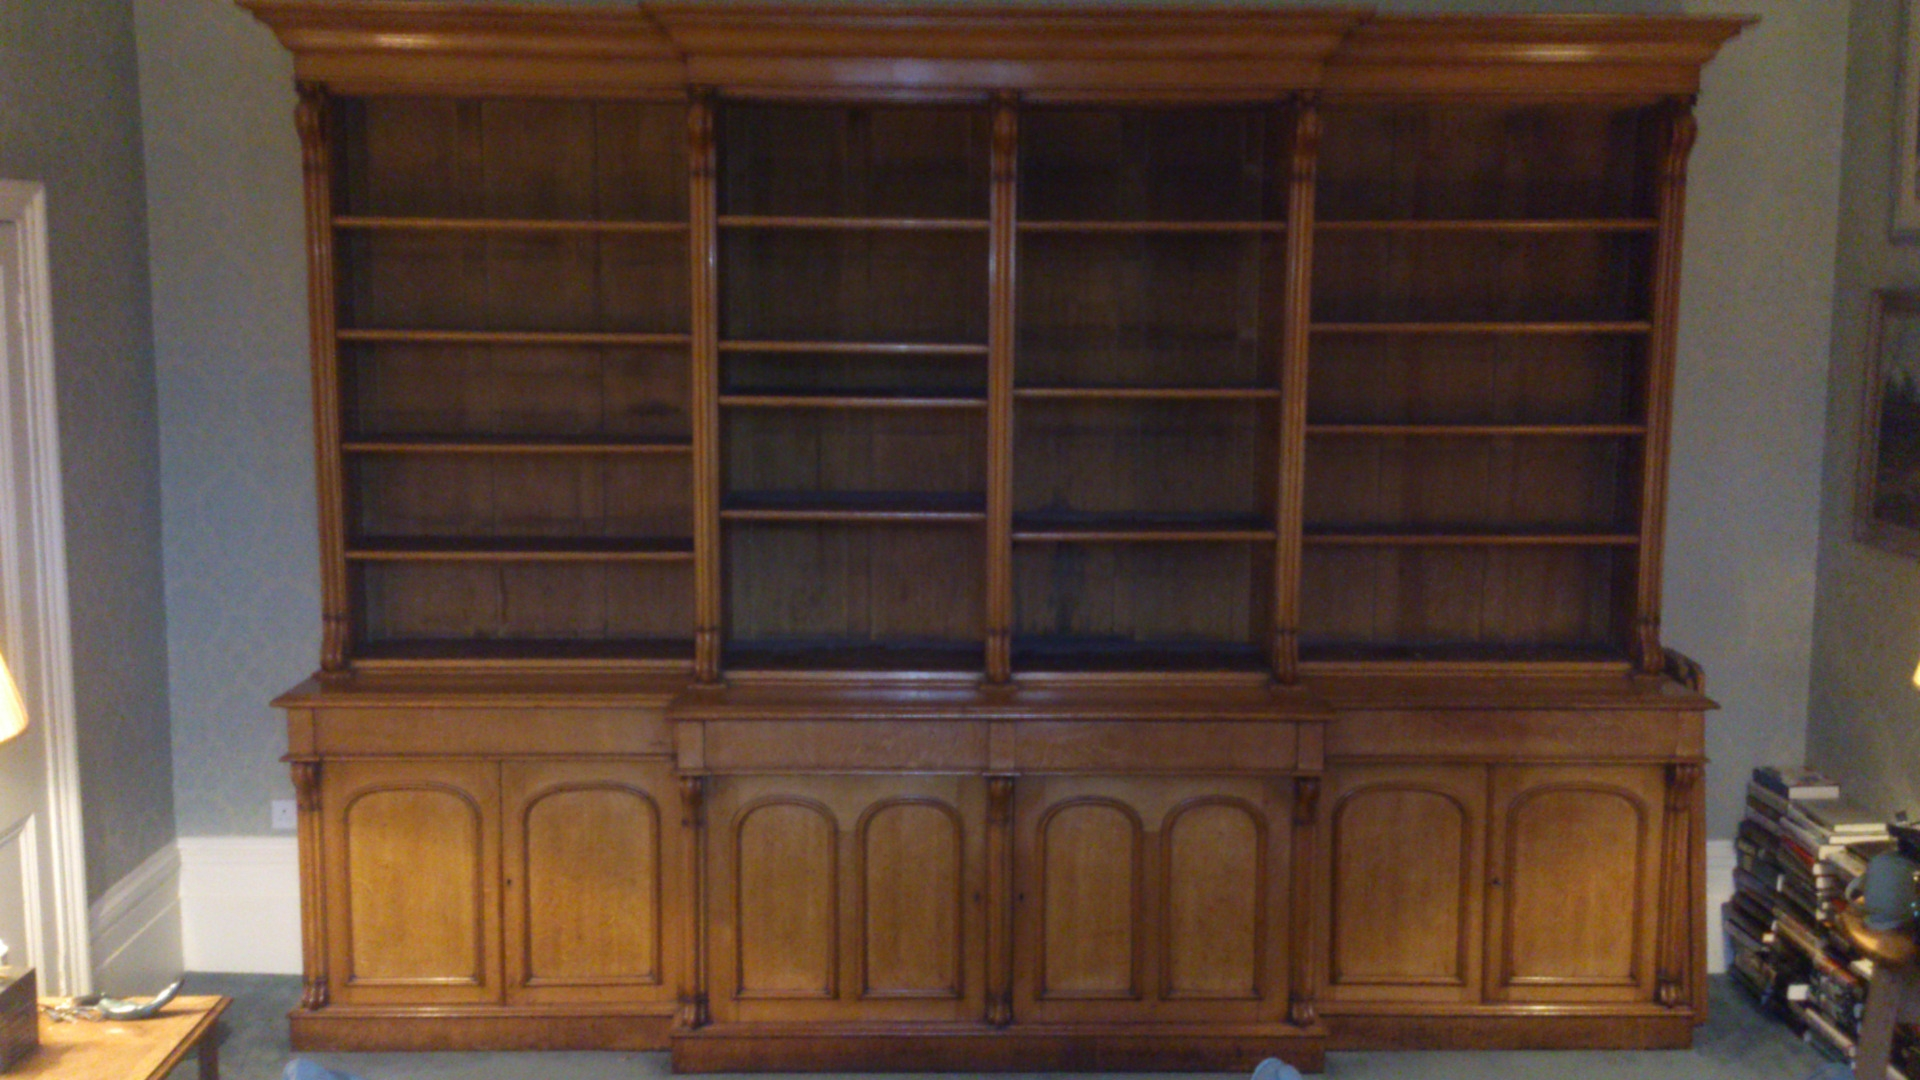 Breakfront Bookcases Hares Antiques Pertaining To Breakfront Bookcase (View 5 of 15)